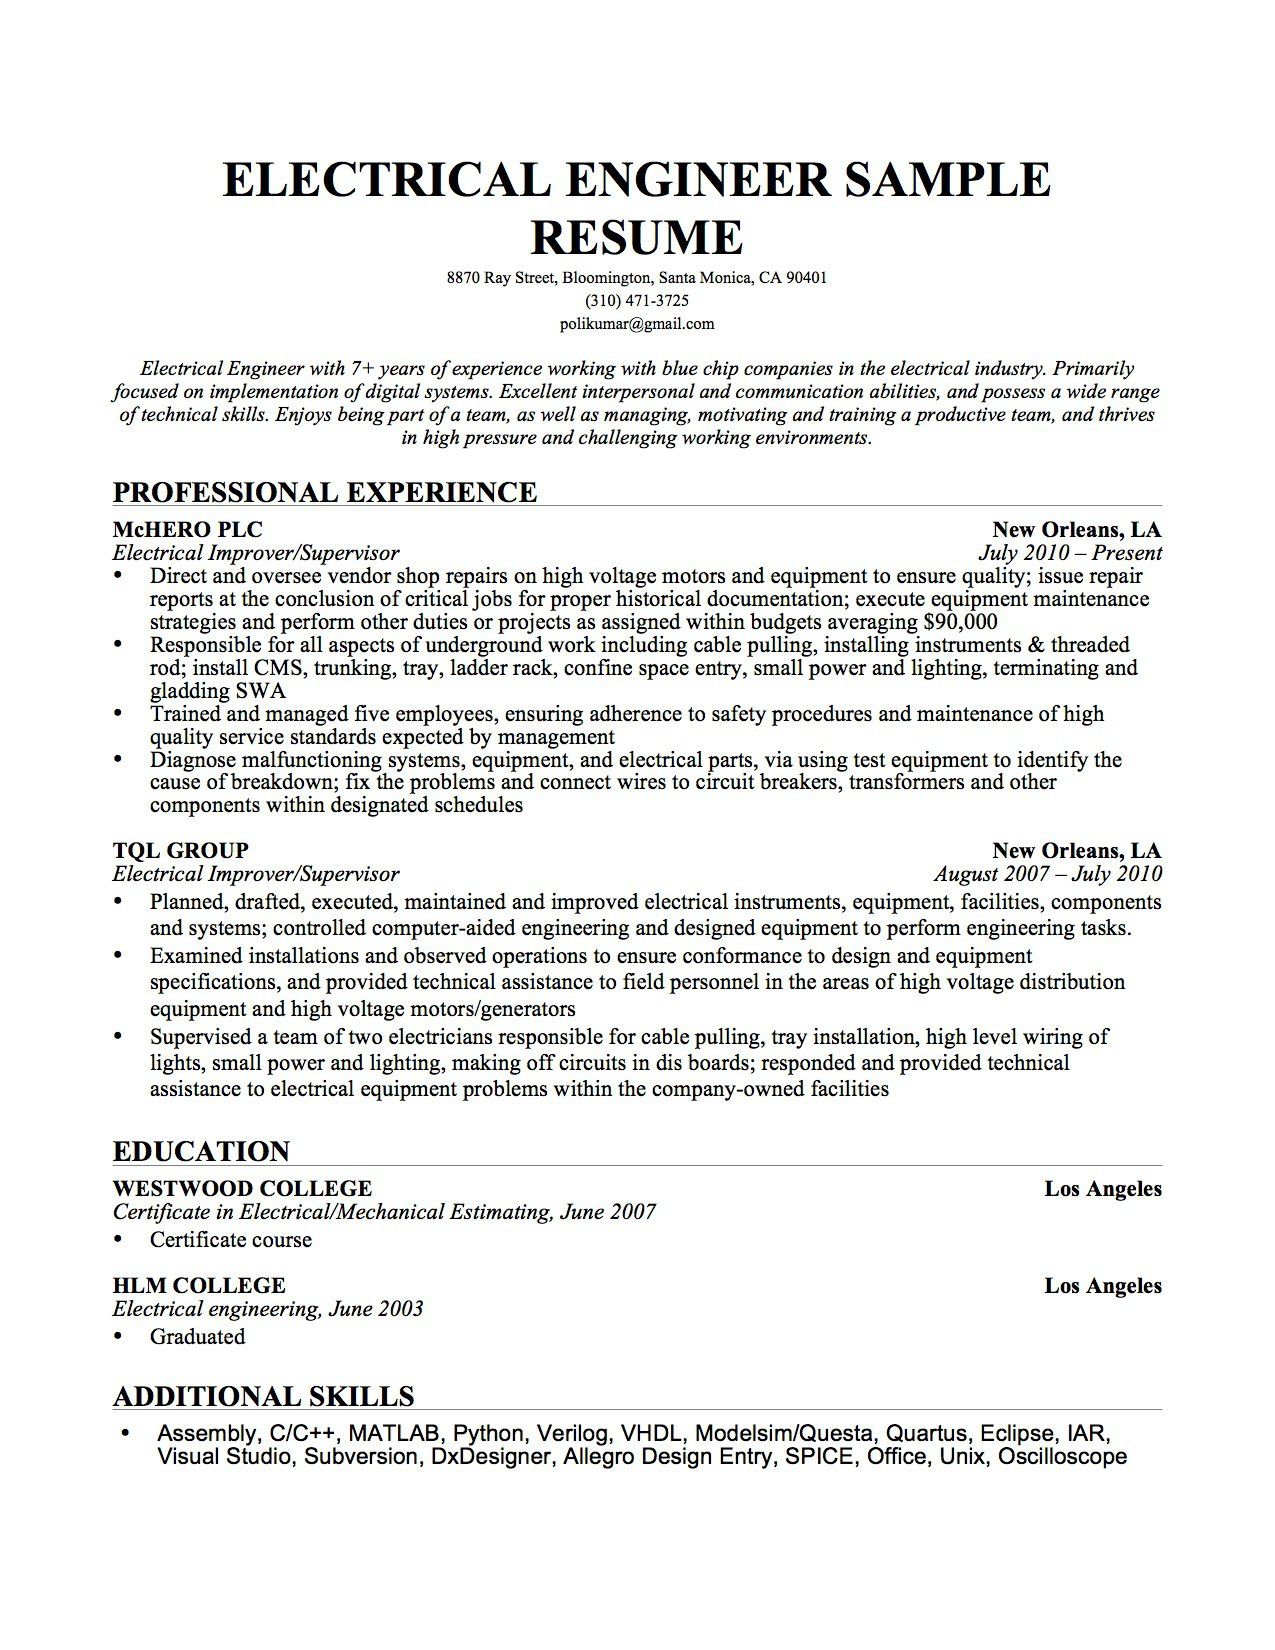 [Computer Hardware Engineer Sample Resume Weld Inspector Cover Letter  Engineering Power Plant Electrical Resumeample Jobs] Warning: Invalid  Argument ...